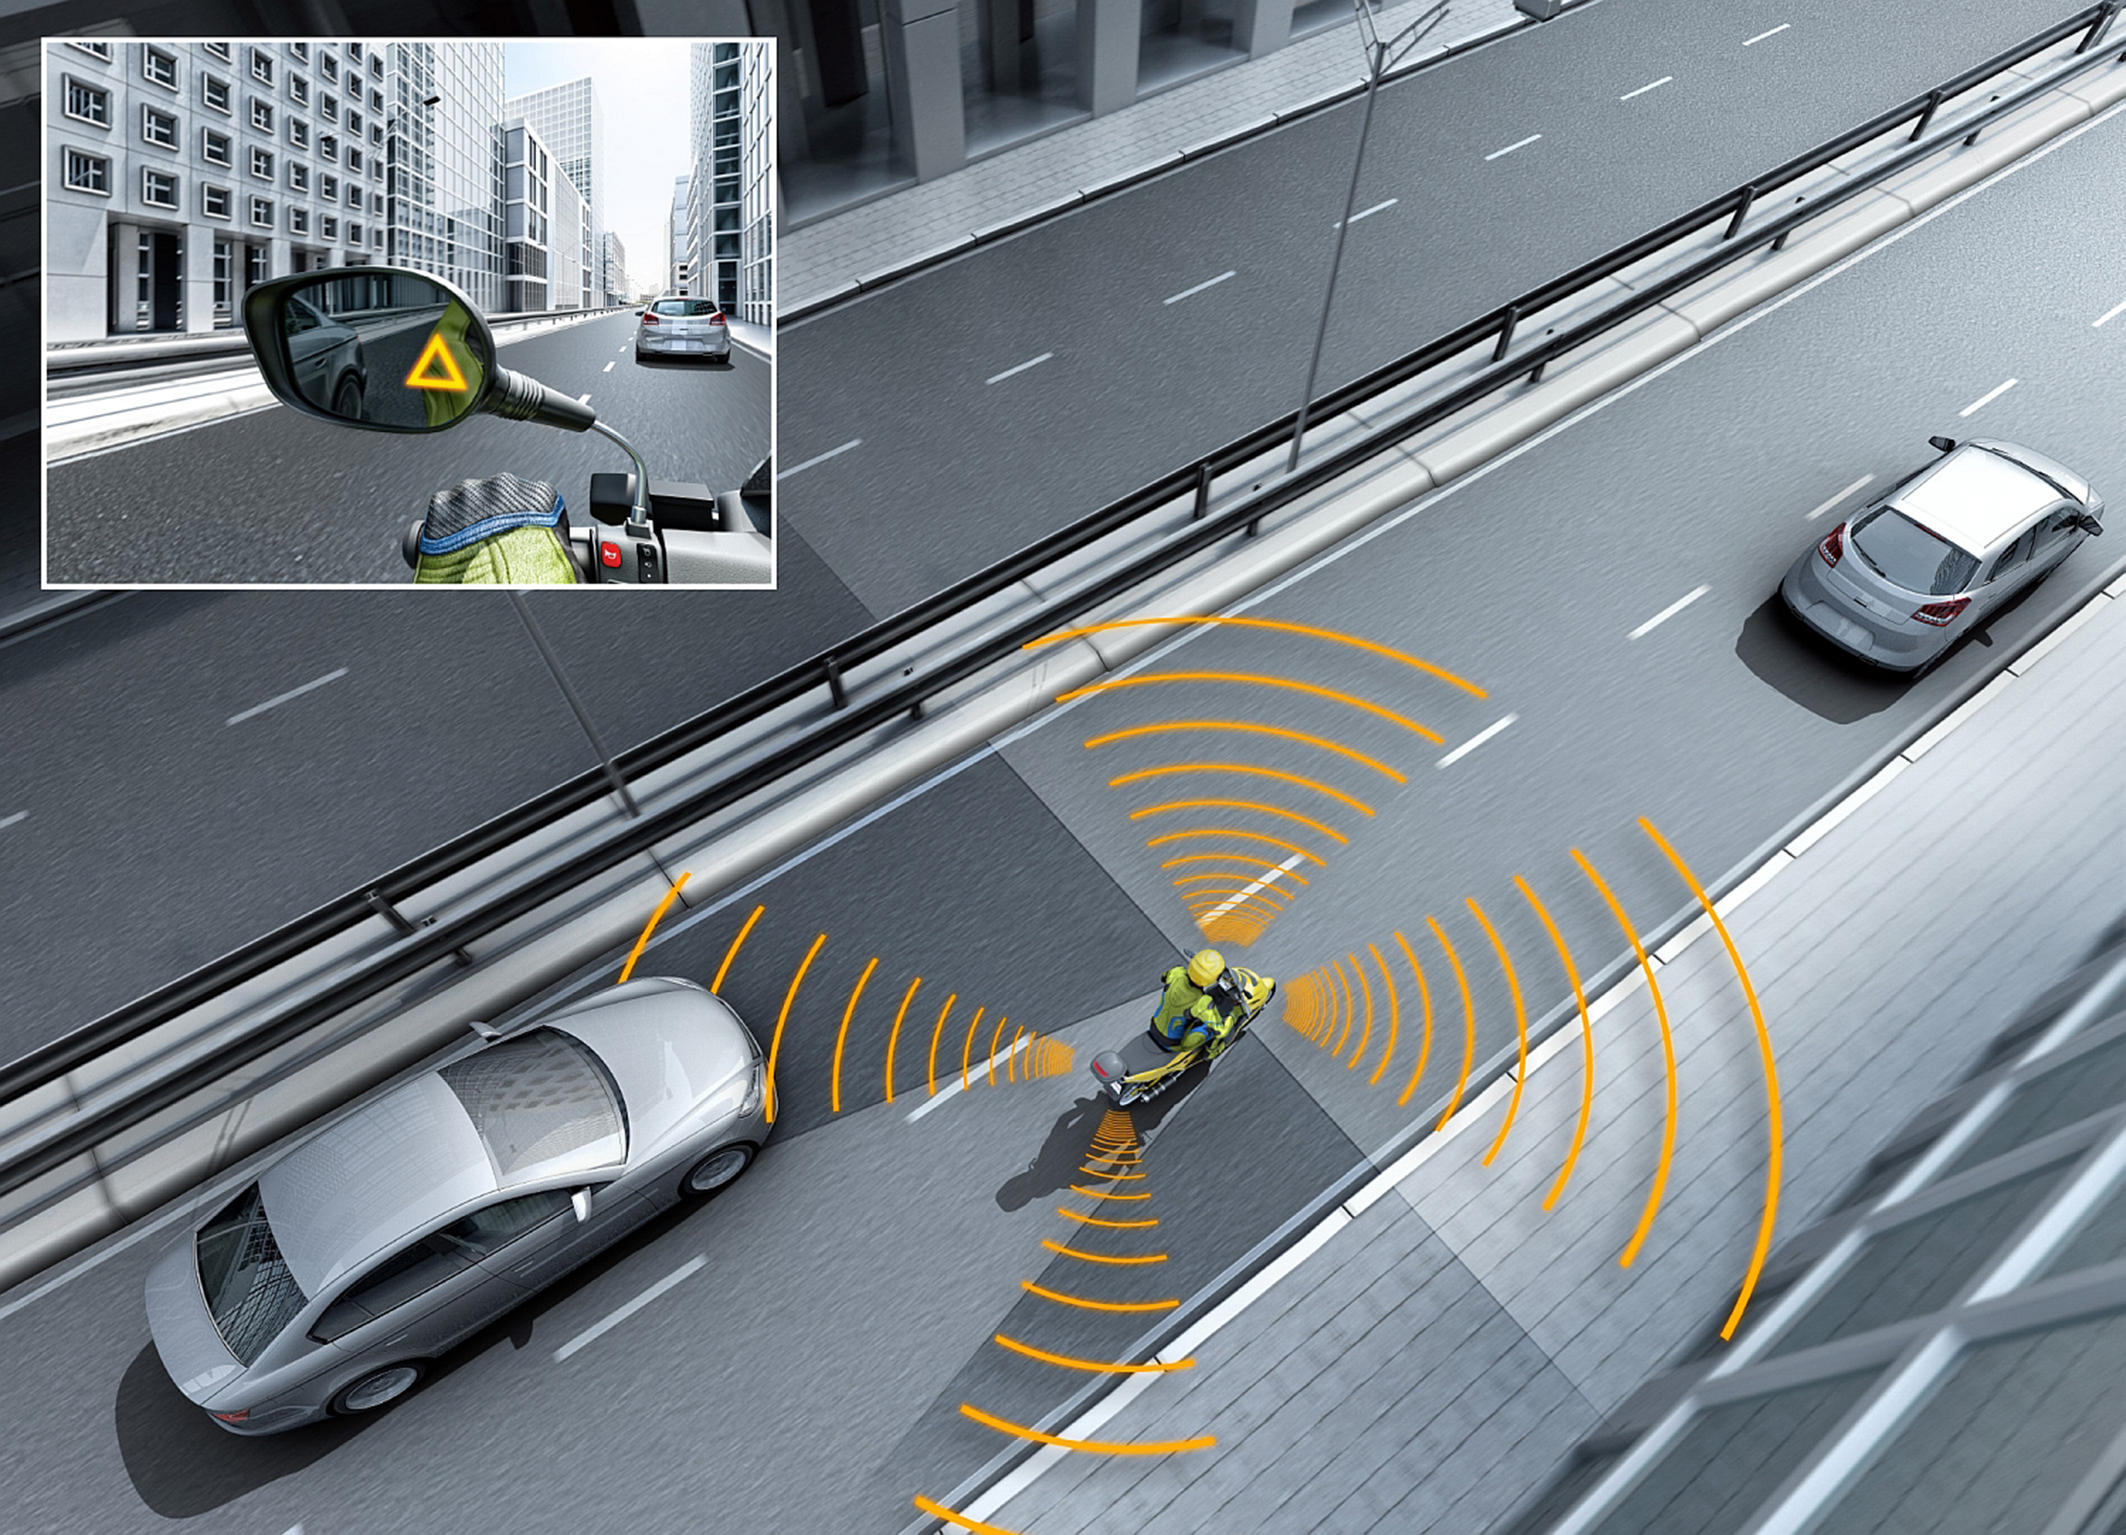 Bosch helps motorcyclists change lanes